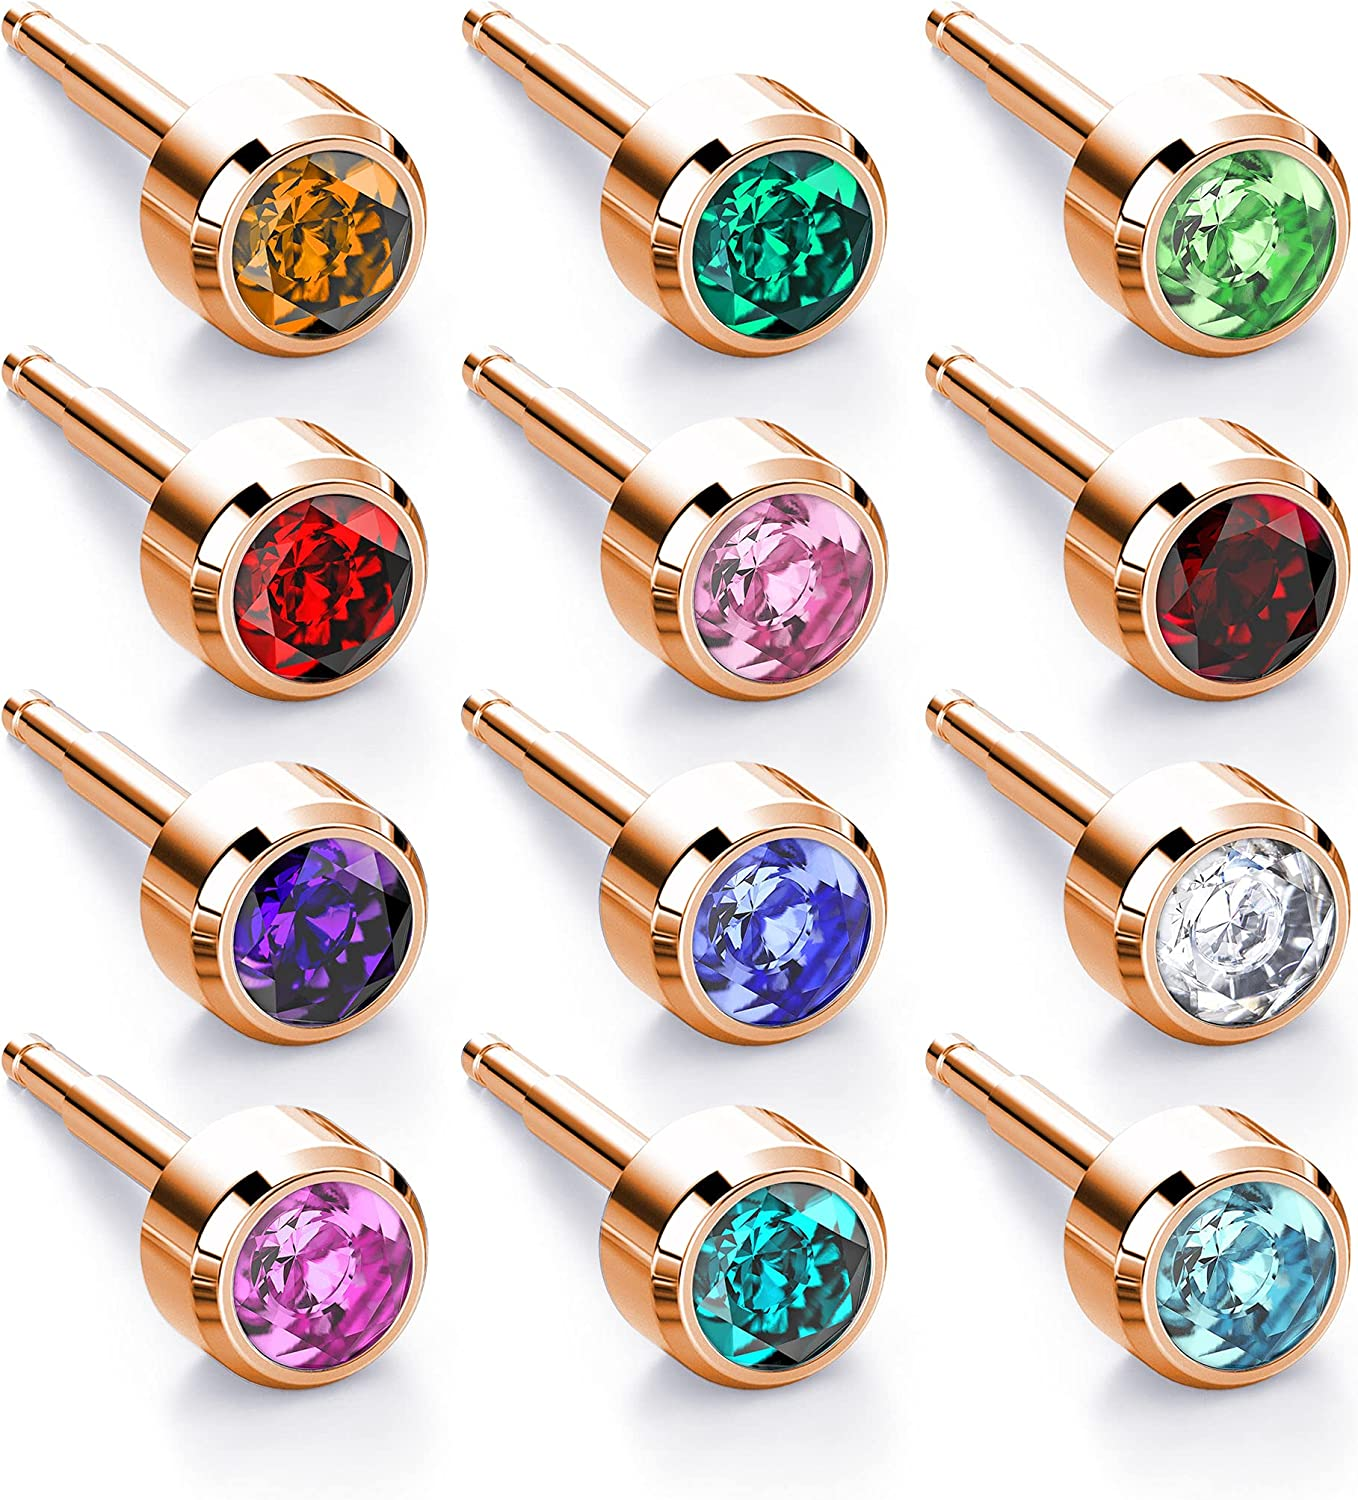 Nina Medikal Stud Earrings - Jewellery Set with Gold Plated Stainless Steel and Crystals - Ear Piercing Kit compatible and Hypoallergenic - 12 Pairs